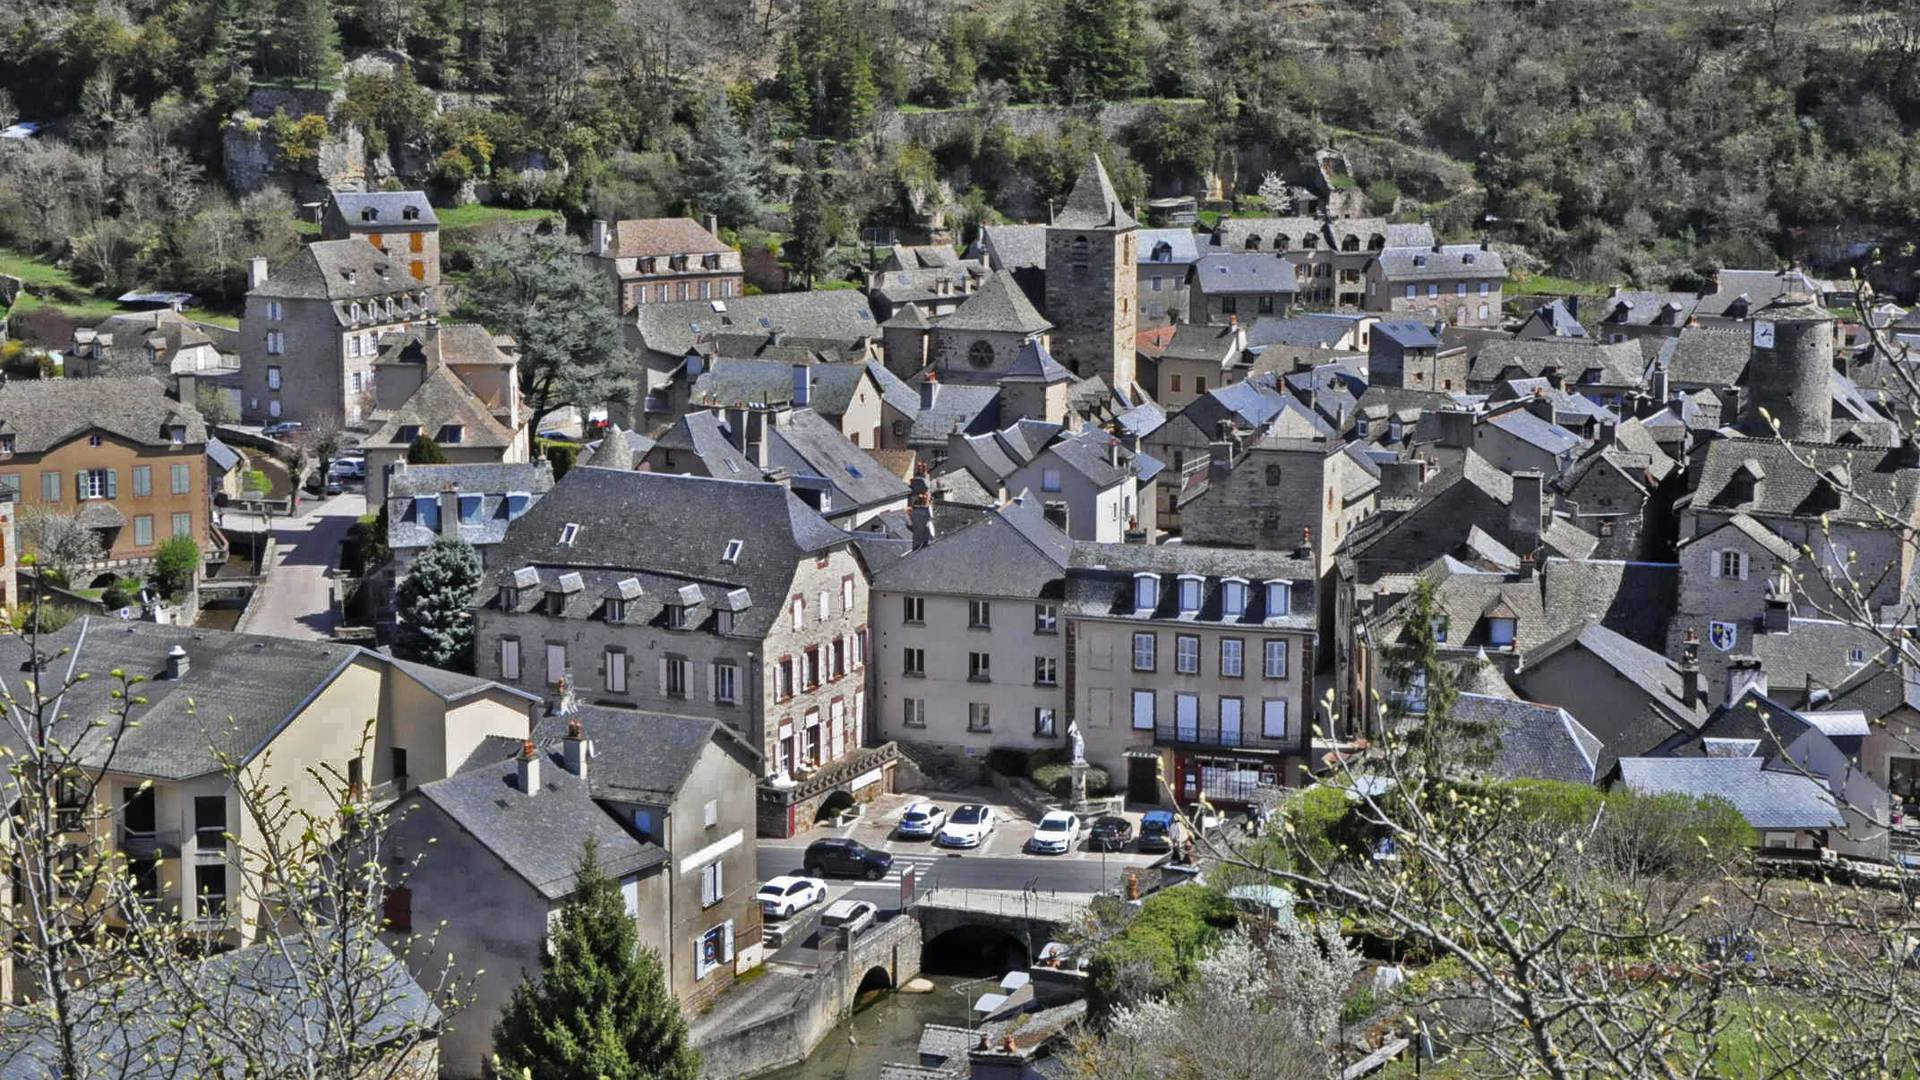 The village of La Canourgue : Lozère's little Venice